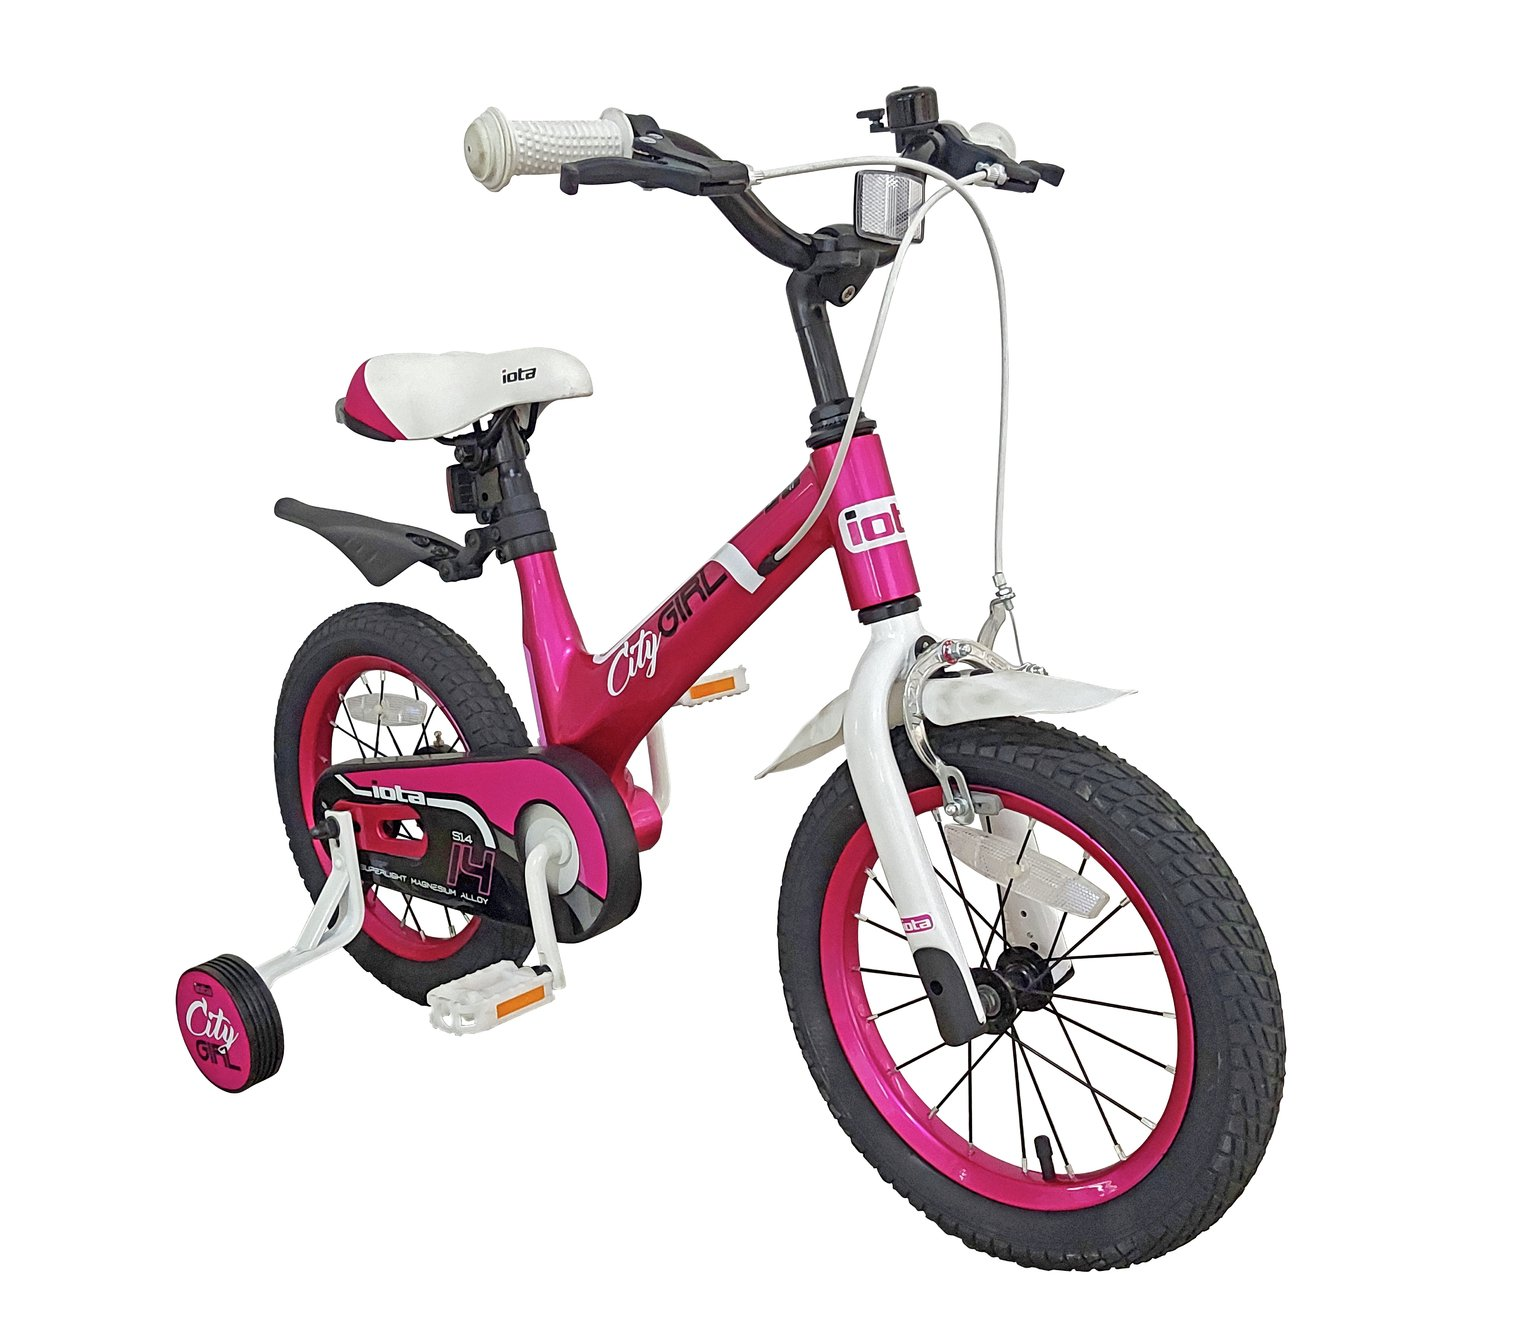 Iota City 14 inch Wheel Size Alloy Kid's Bike